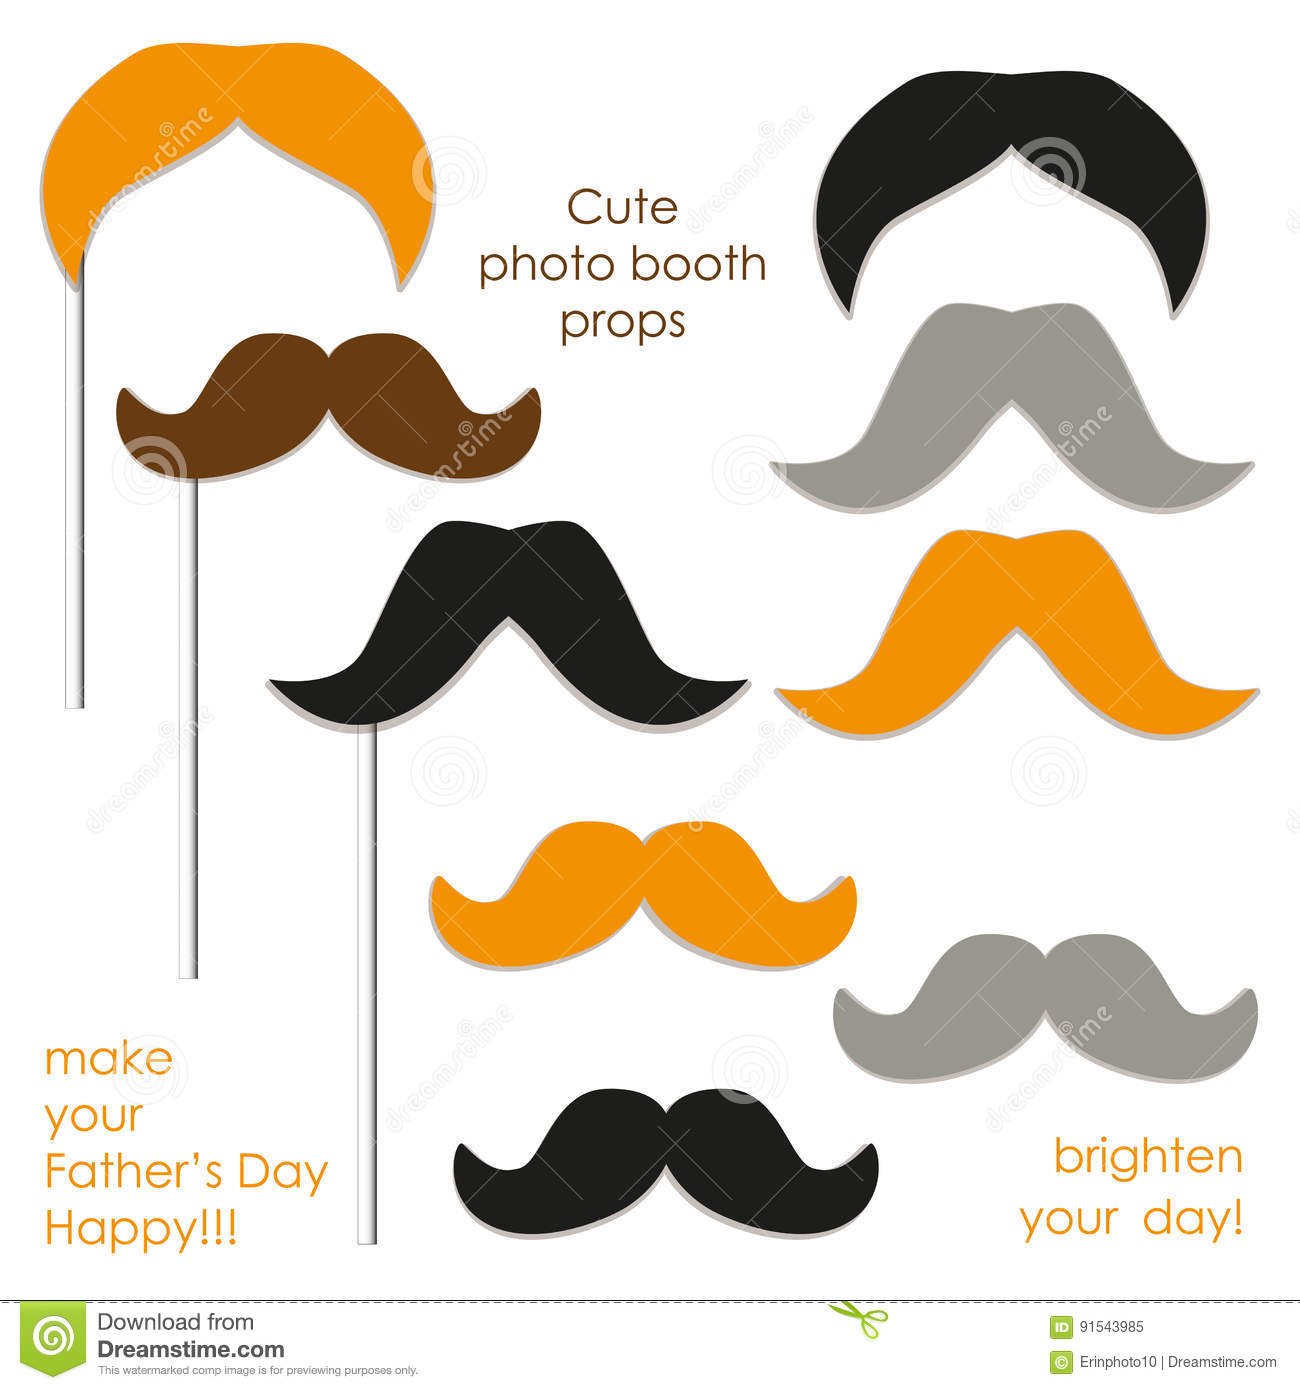 Cute Photo Booth Props To Make Your Father`s Day Really